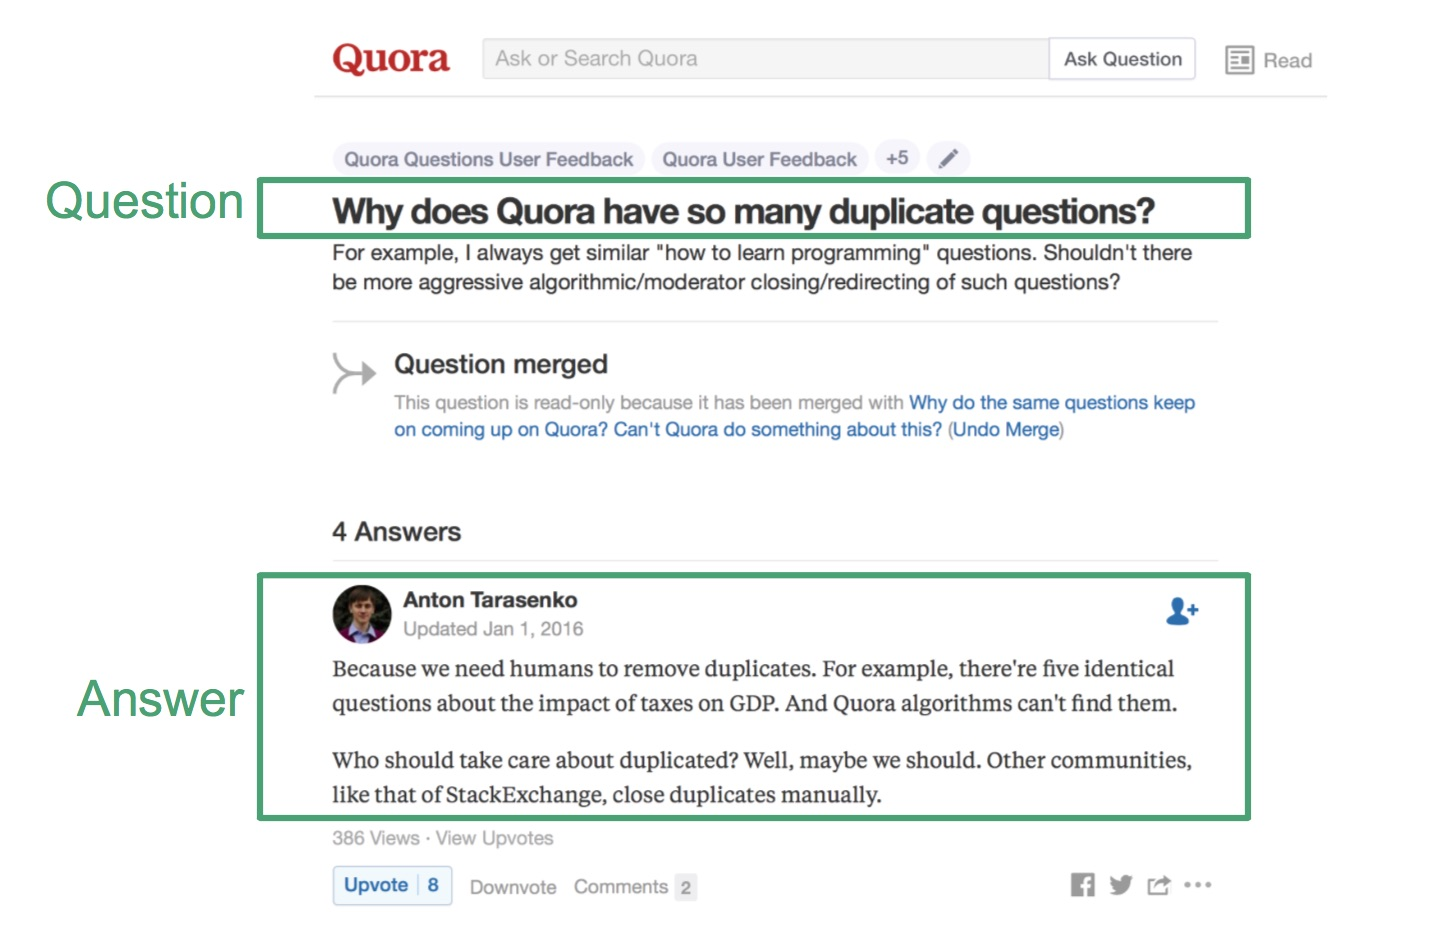 To Address This Problem, Quora Allows Duplicate Questions To Be Merged  Even With This Feature, The Site Is Still Struggling With A Proliferation  Of